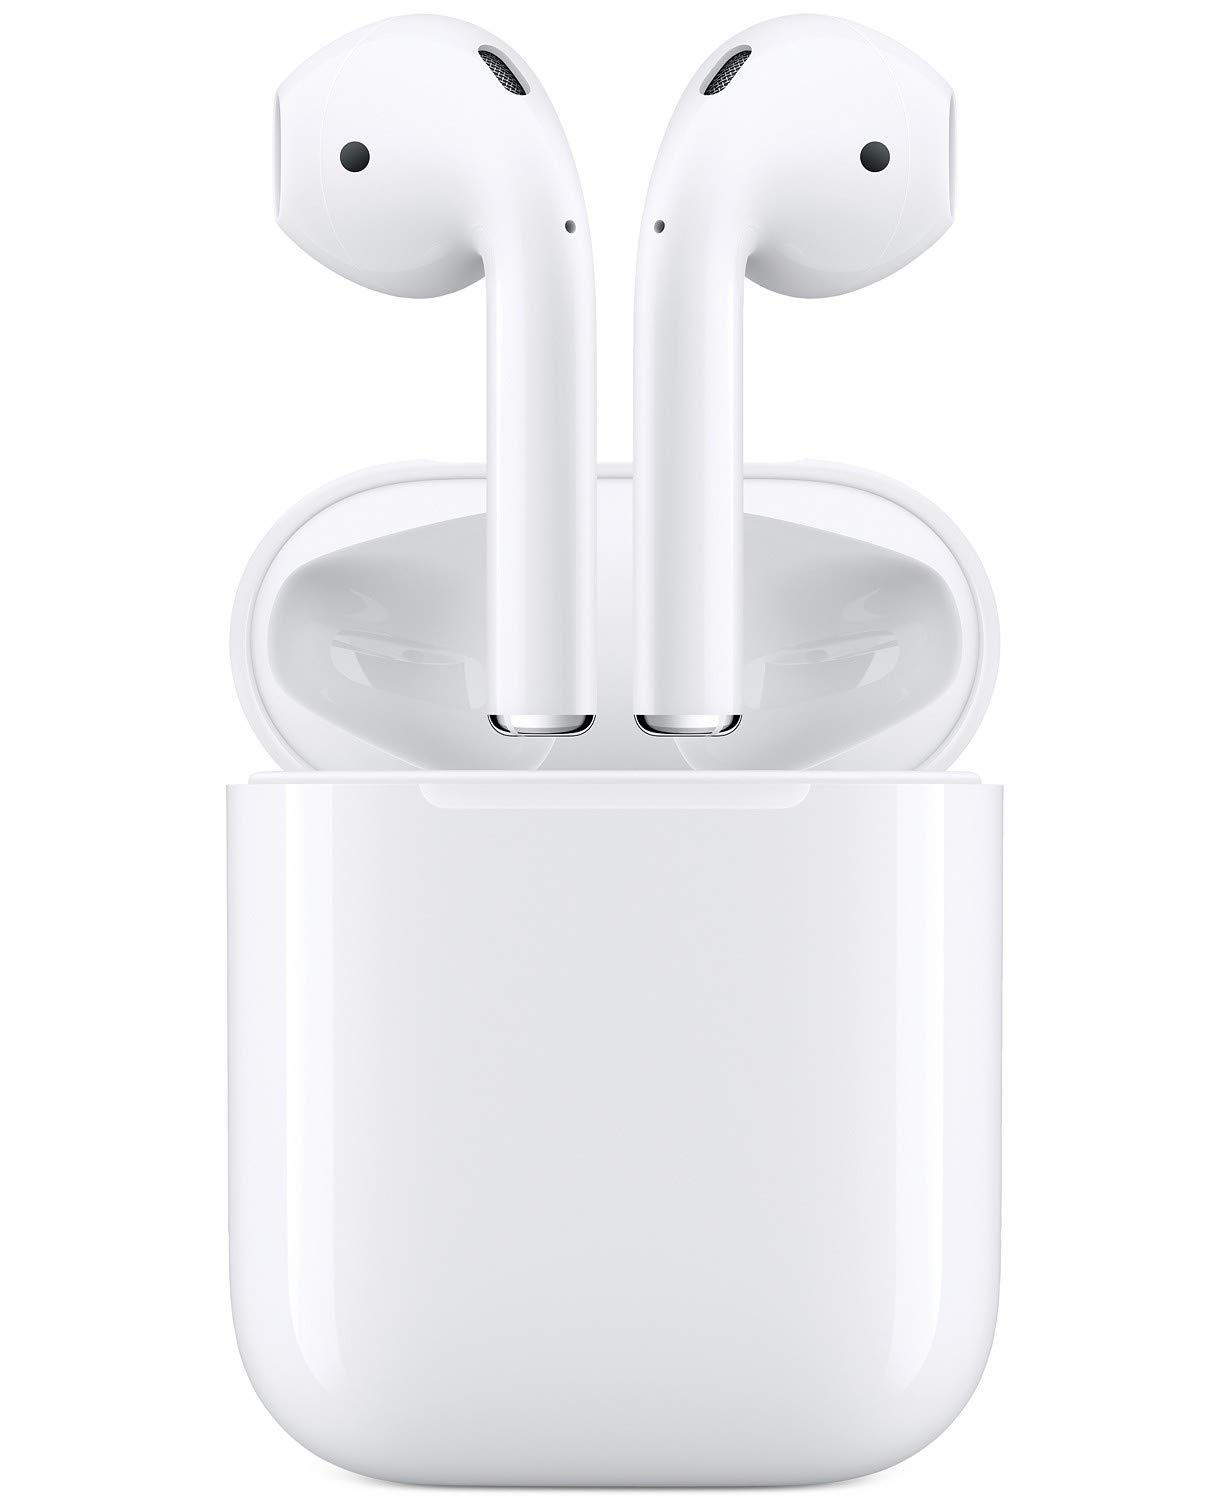 Apple MMEF2AM/A AirPods Wireless Bluetooth Headset for iPhones with iOS 10 or Later White - (Refurbished) Apple Computer